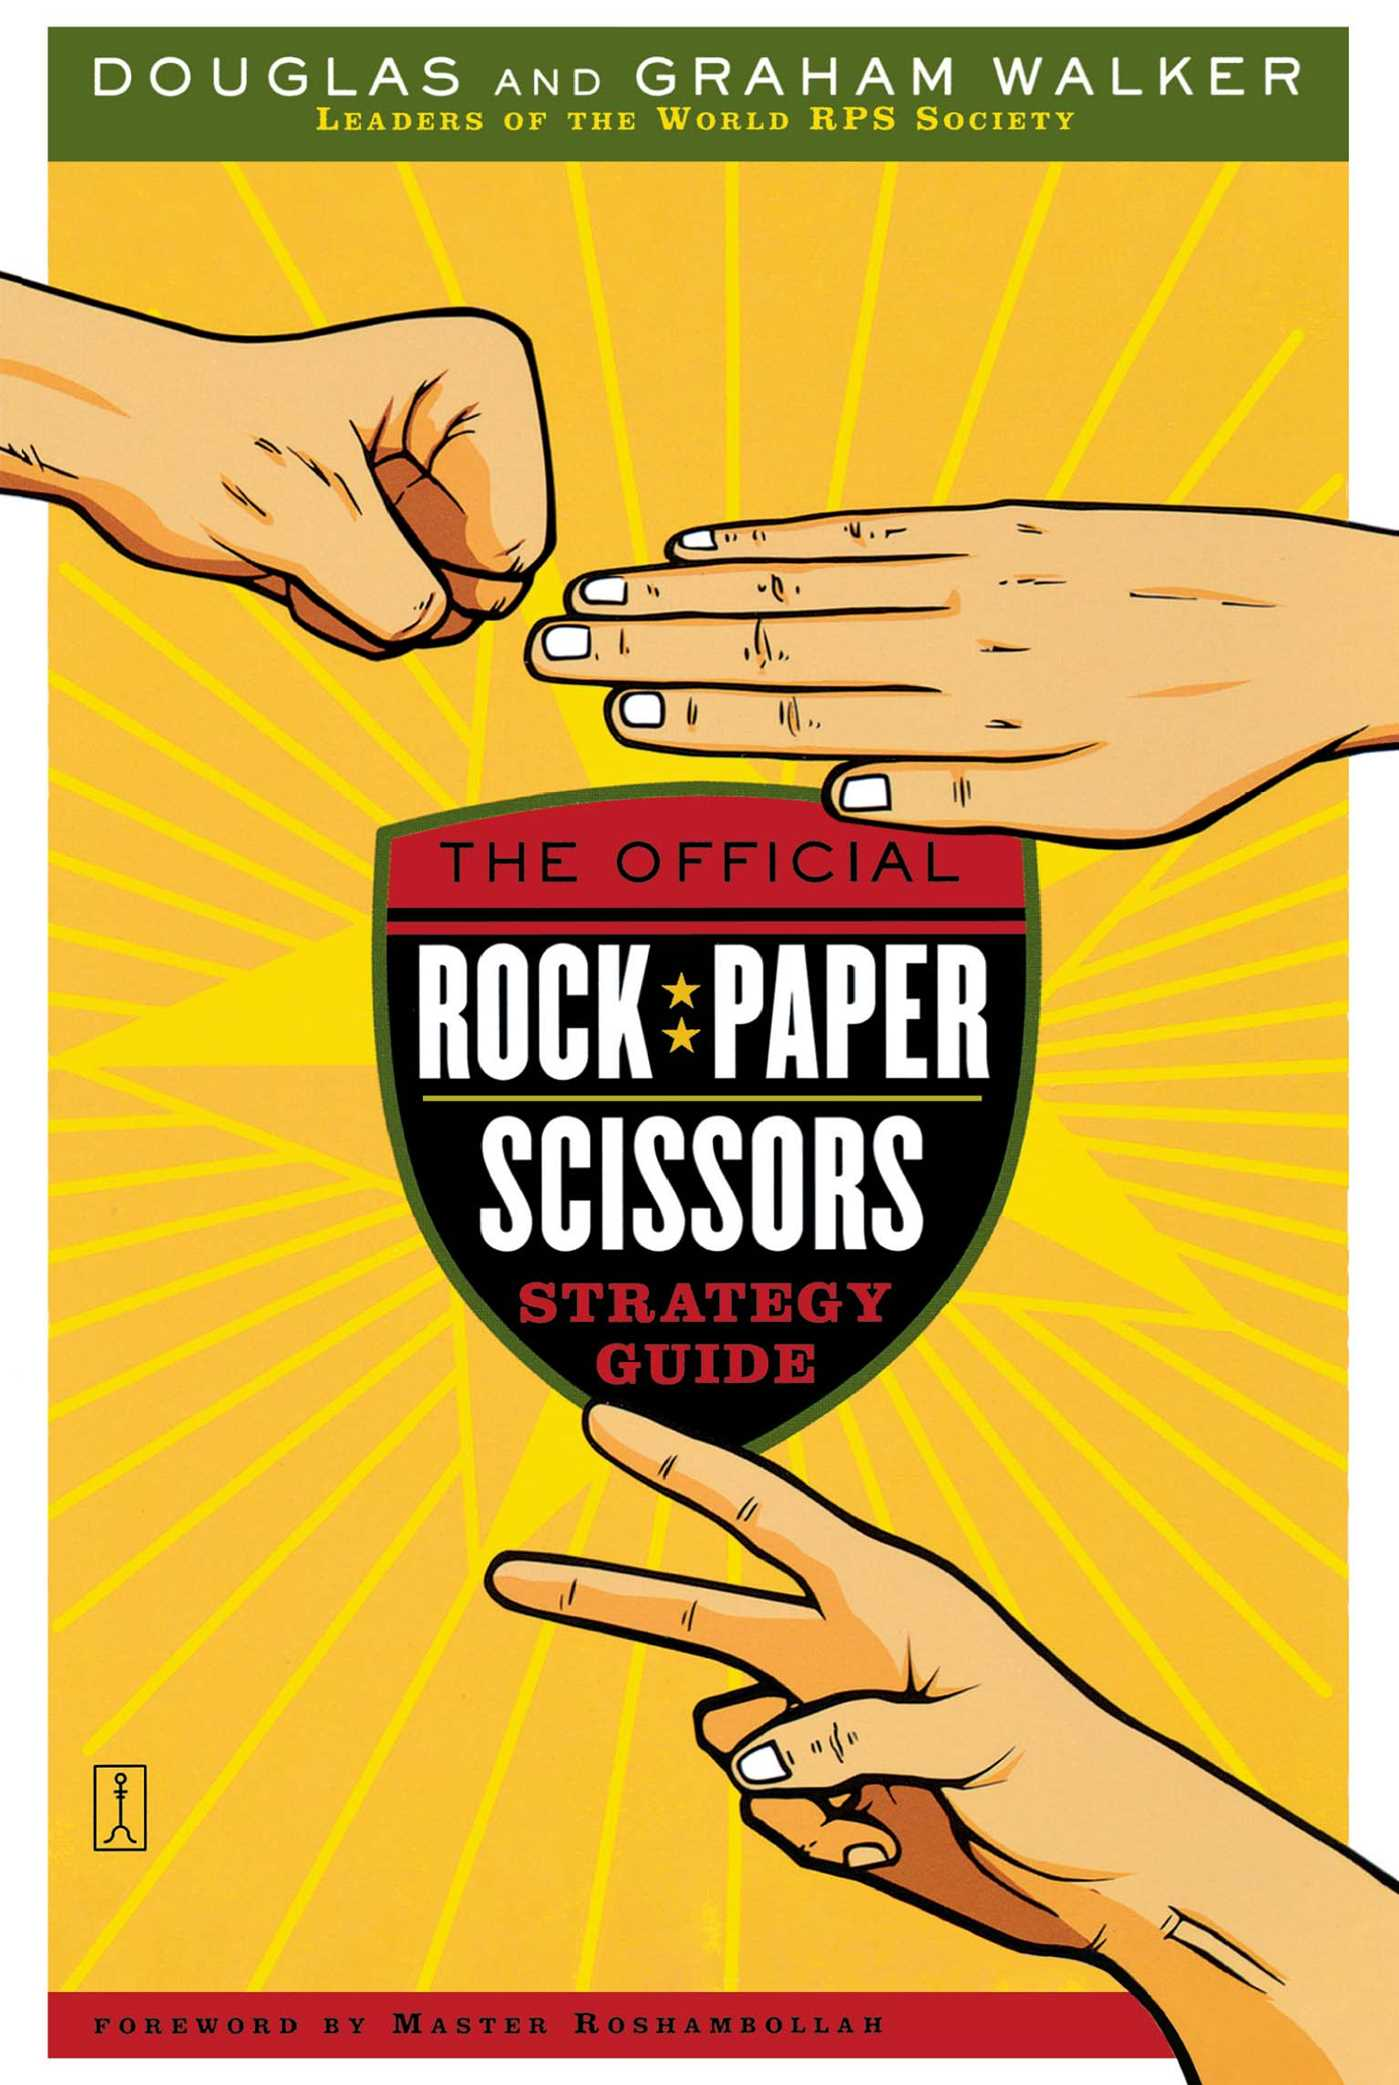 The official rock paper scissors strategy guide 9780743272629 hr